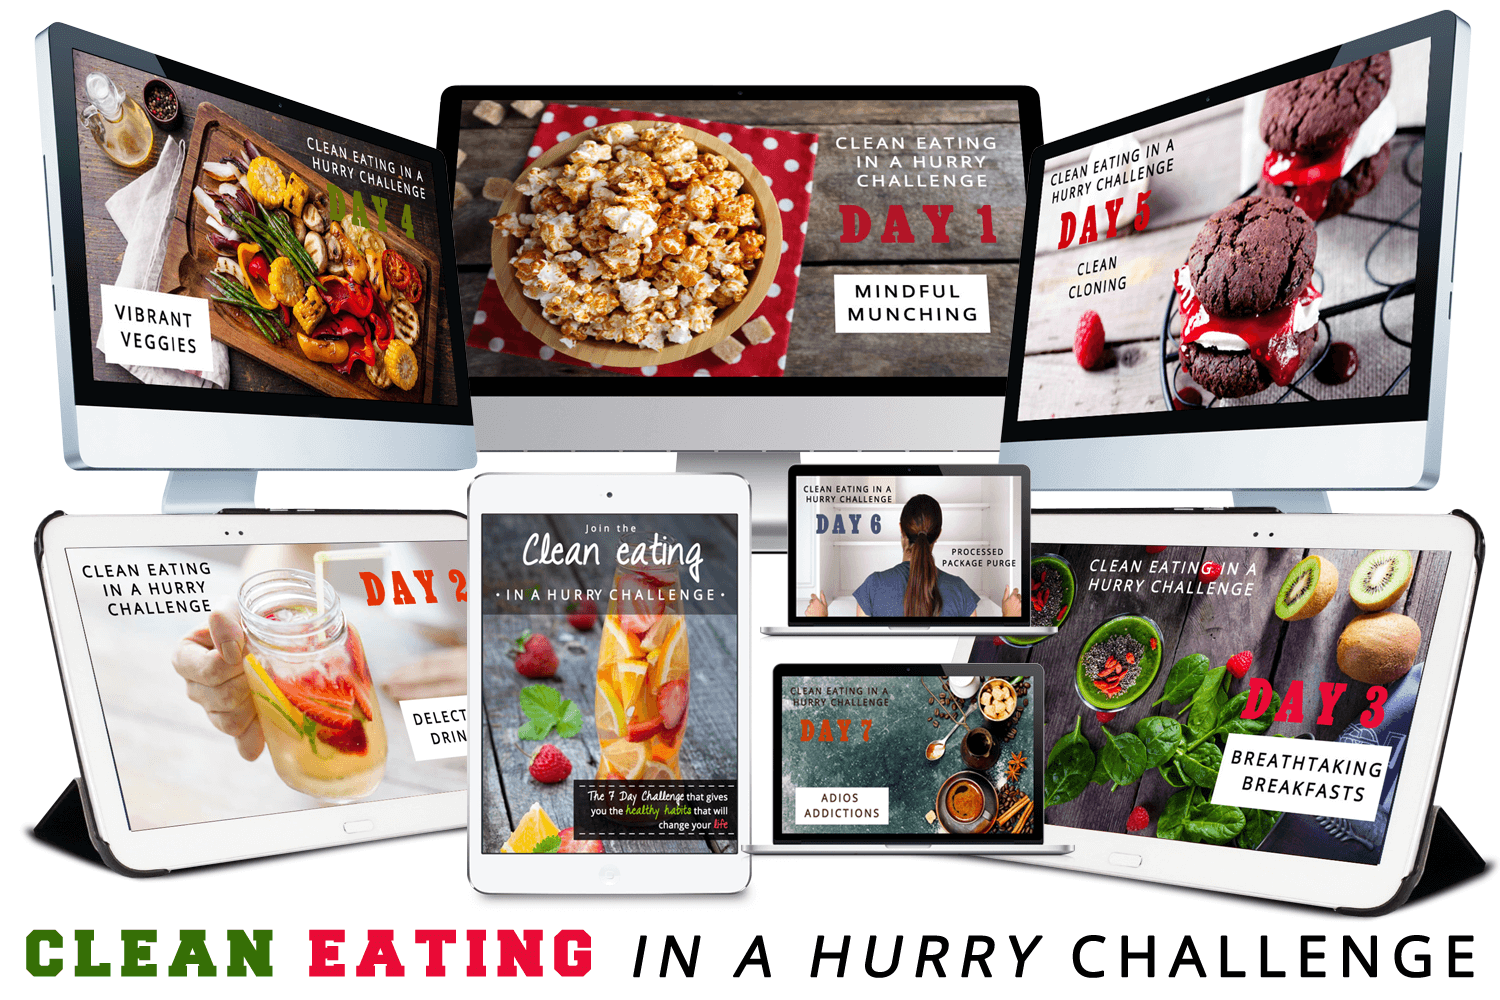 CLEAN EATING IN A HURRY CHALLENGE